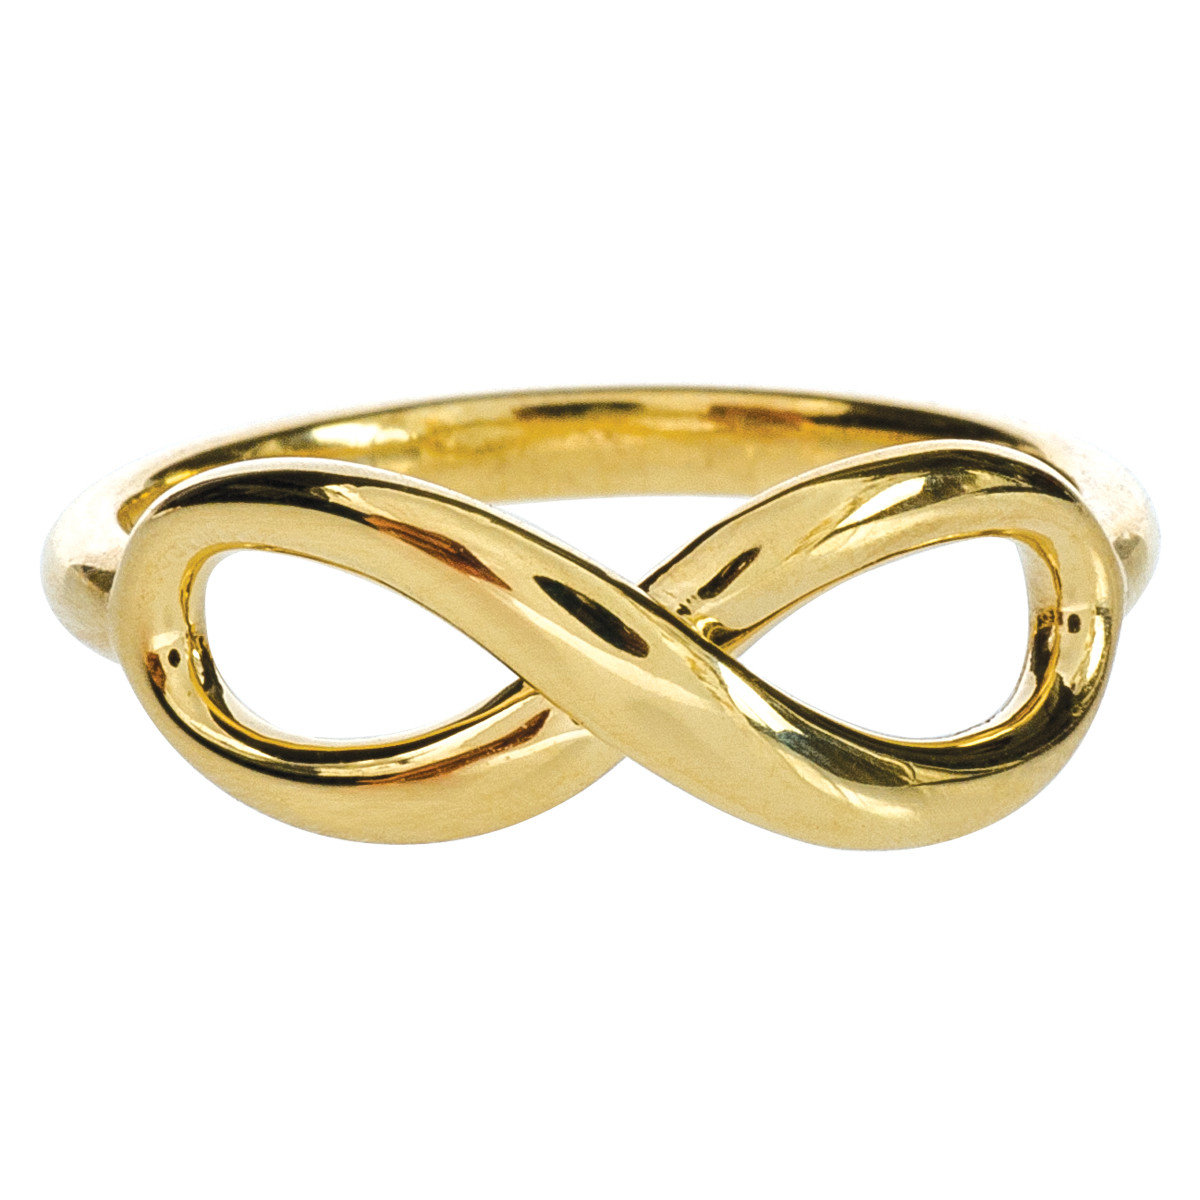 979cfef3c Vintage Tiffany & Co. Infinity Ring Gallery Image